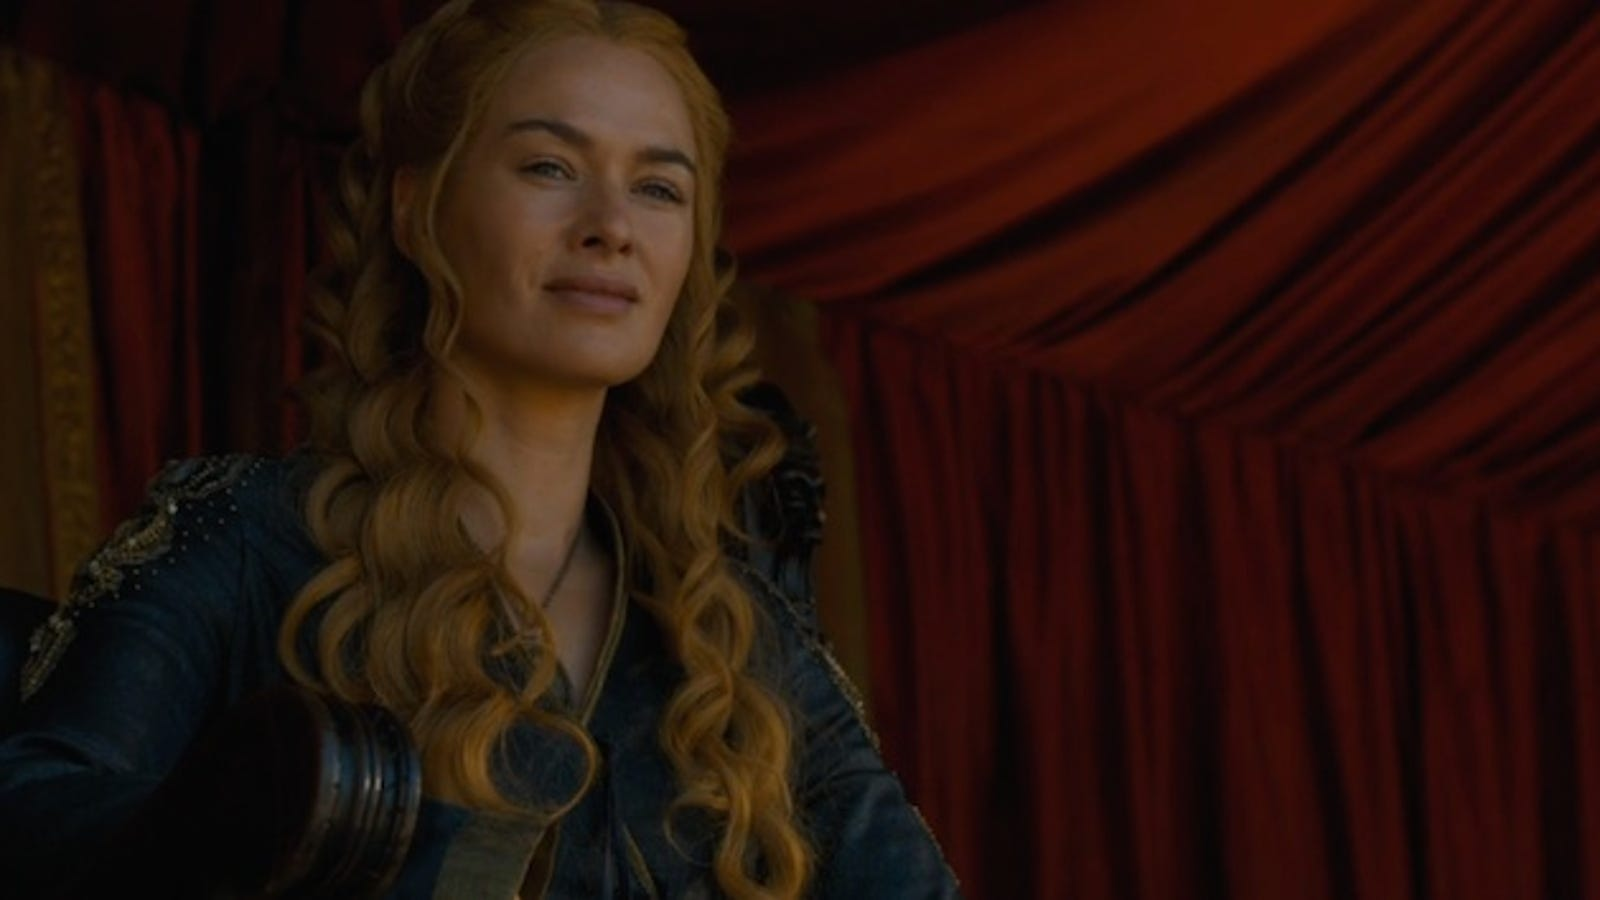 More New Game Of Thrones Season 5 Characters Reveal A Major Twist